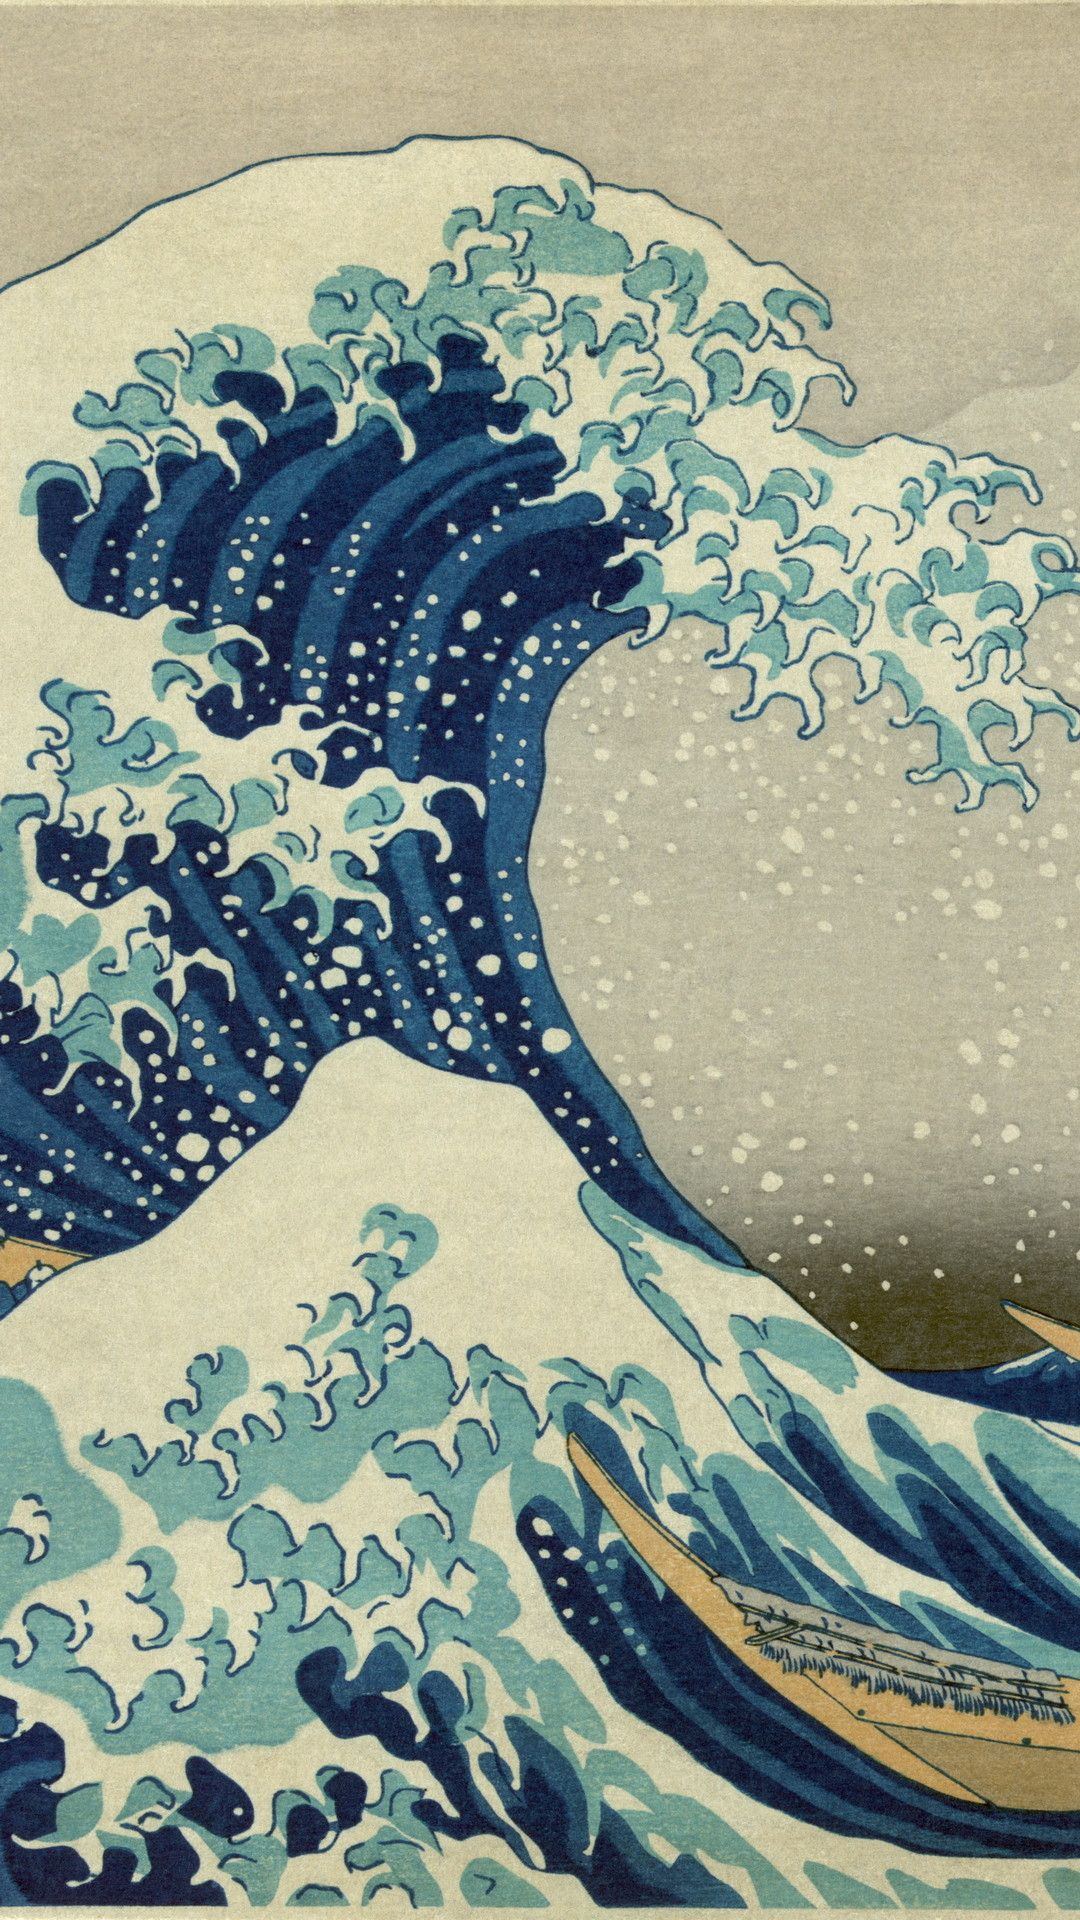 Katsushika Hokusai Japan art iPhone wallpapers iPhone